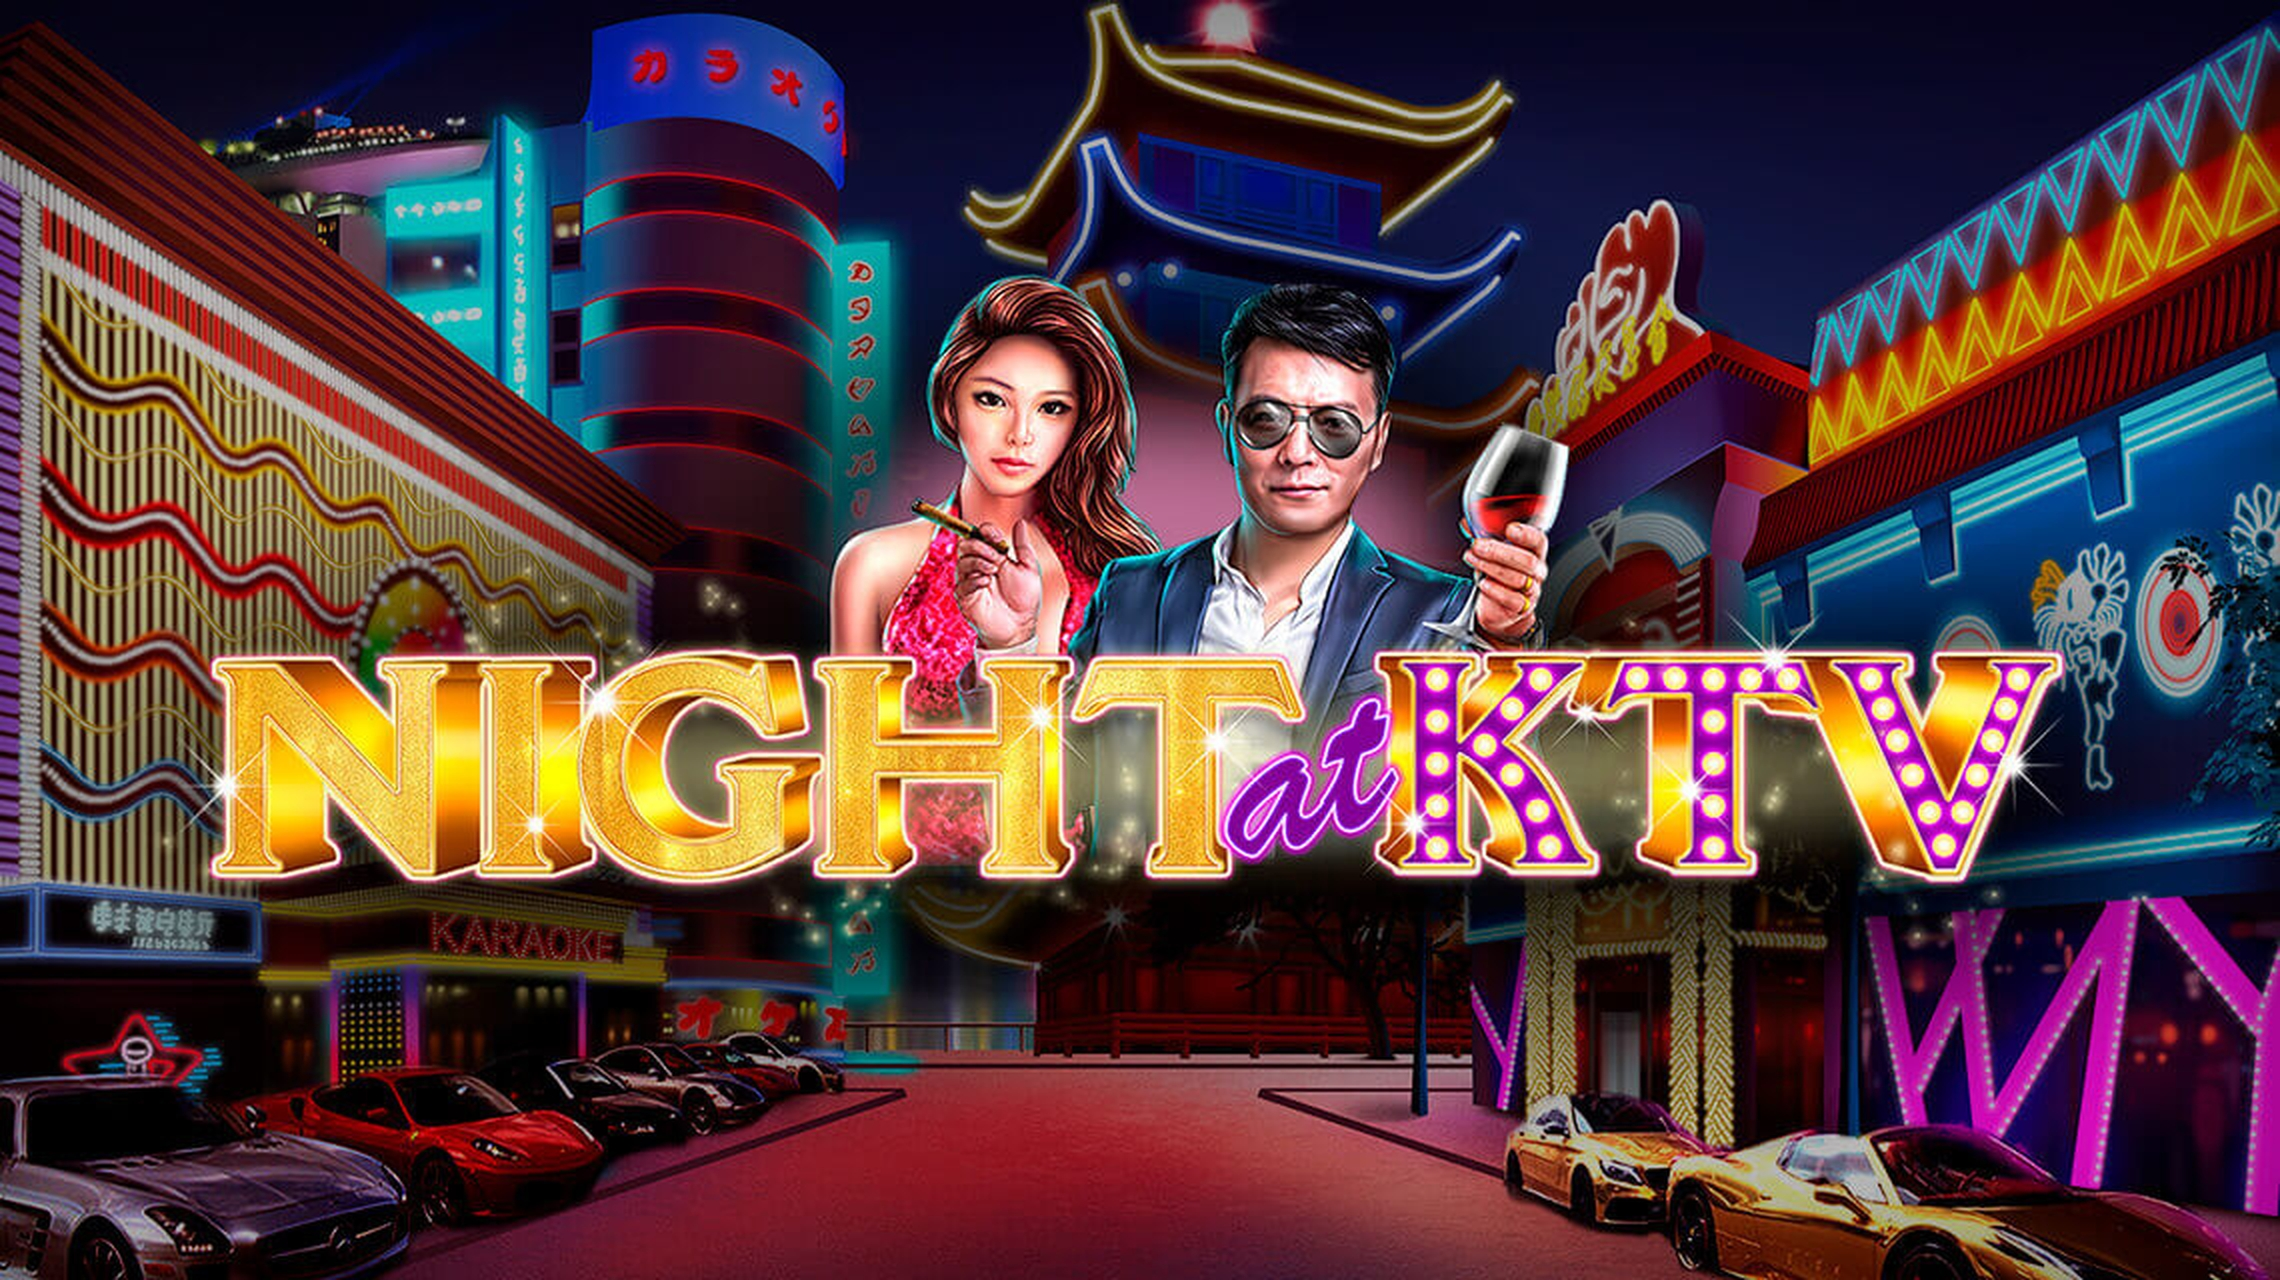 The Night at KTV Online Slot Demo Game by GameArt